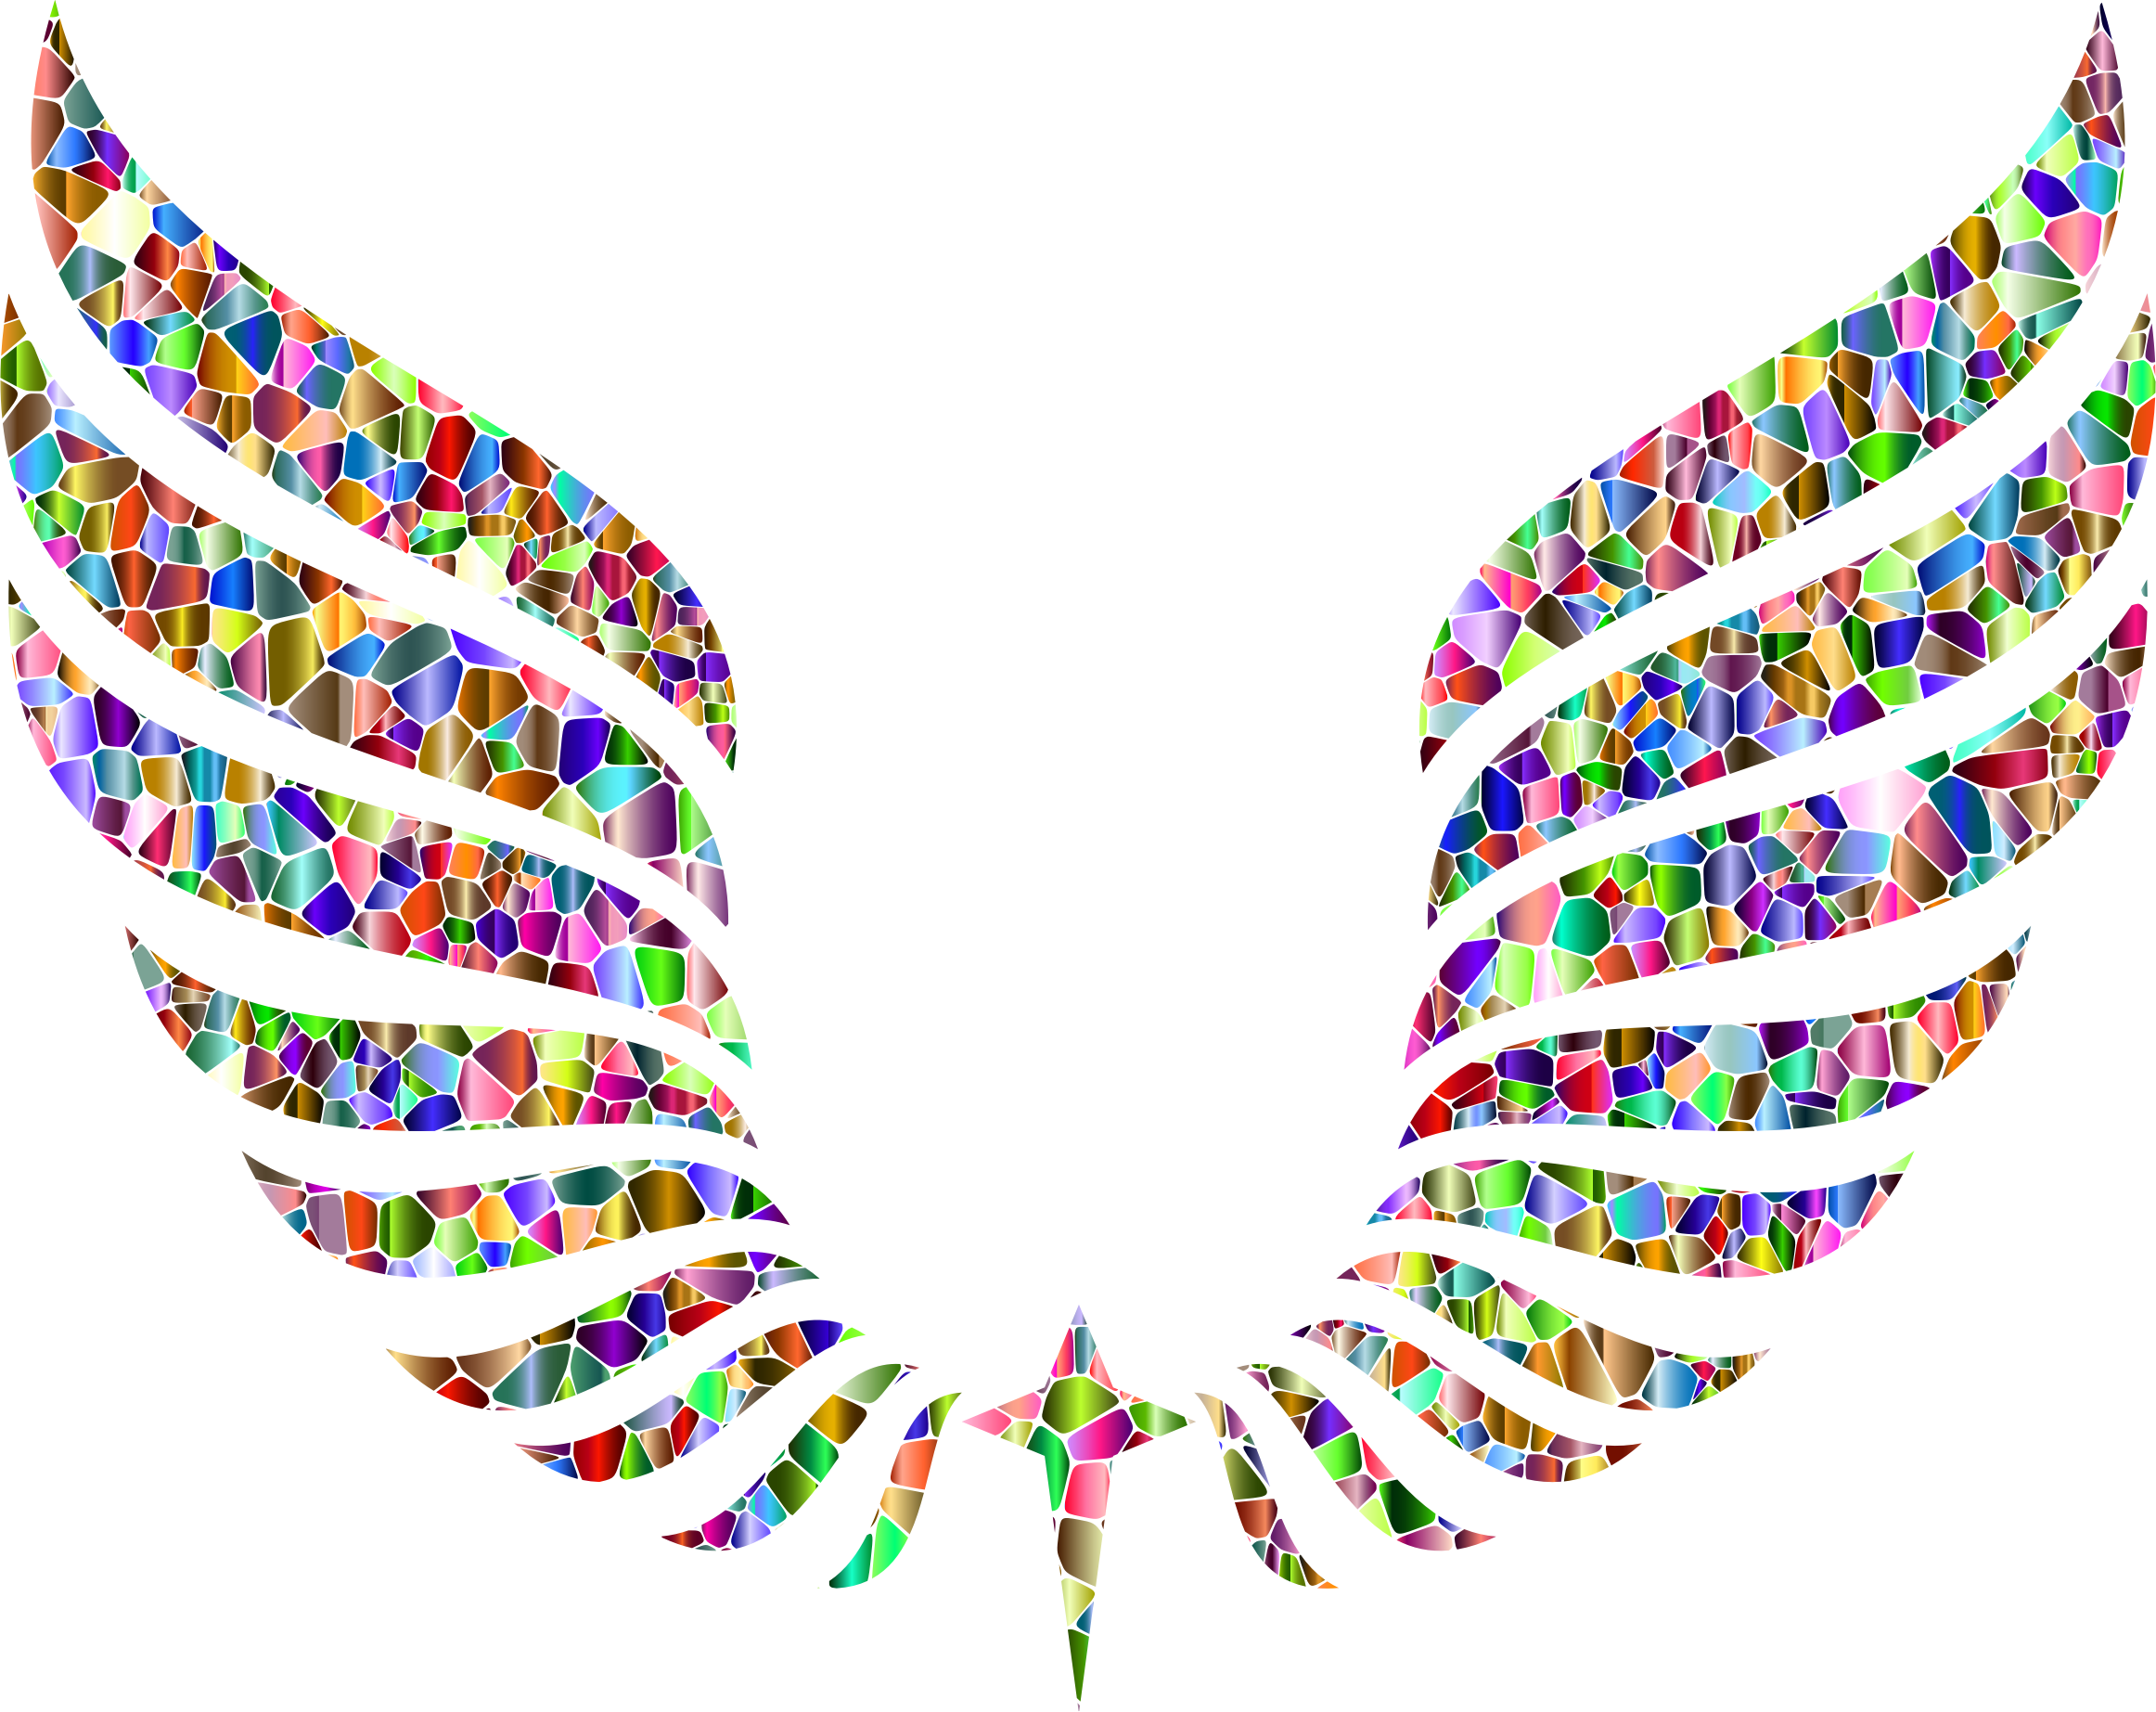 Vivid Chromatic Tiled Abstract Wings by GDJ